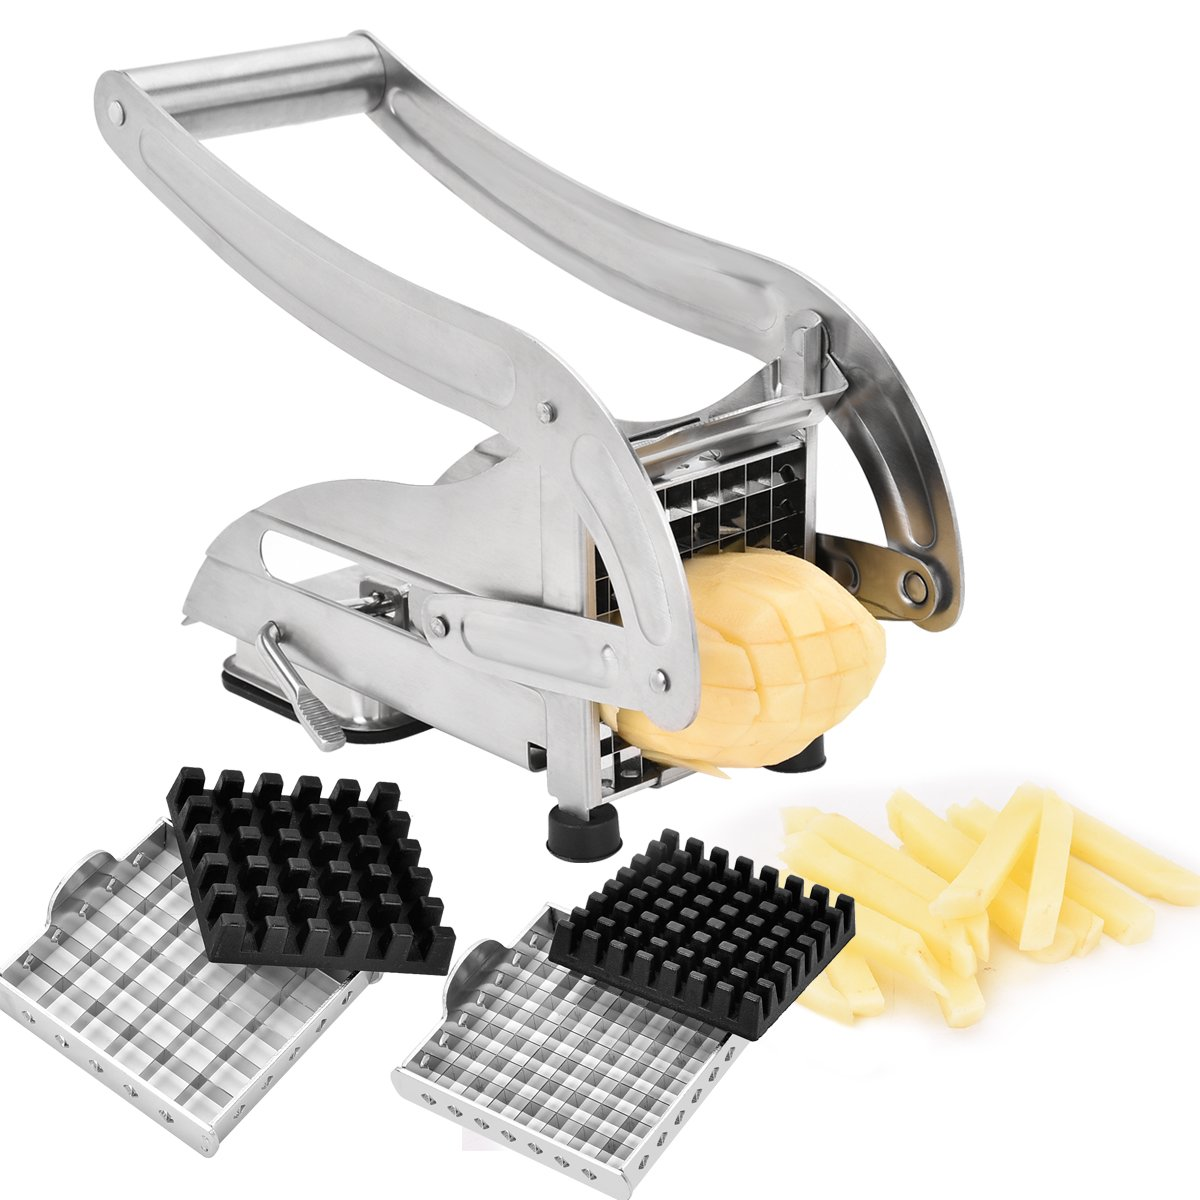 Sopito Professional Grade French Fry Cutter, Stainless Steel Potato Chipper with Suction Base Leeo store